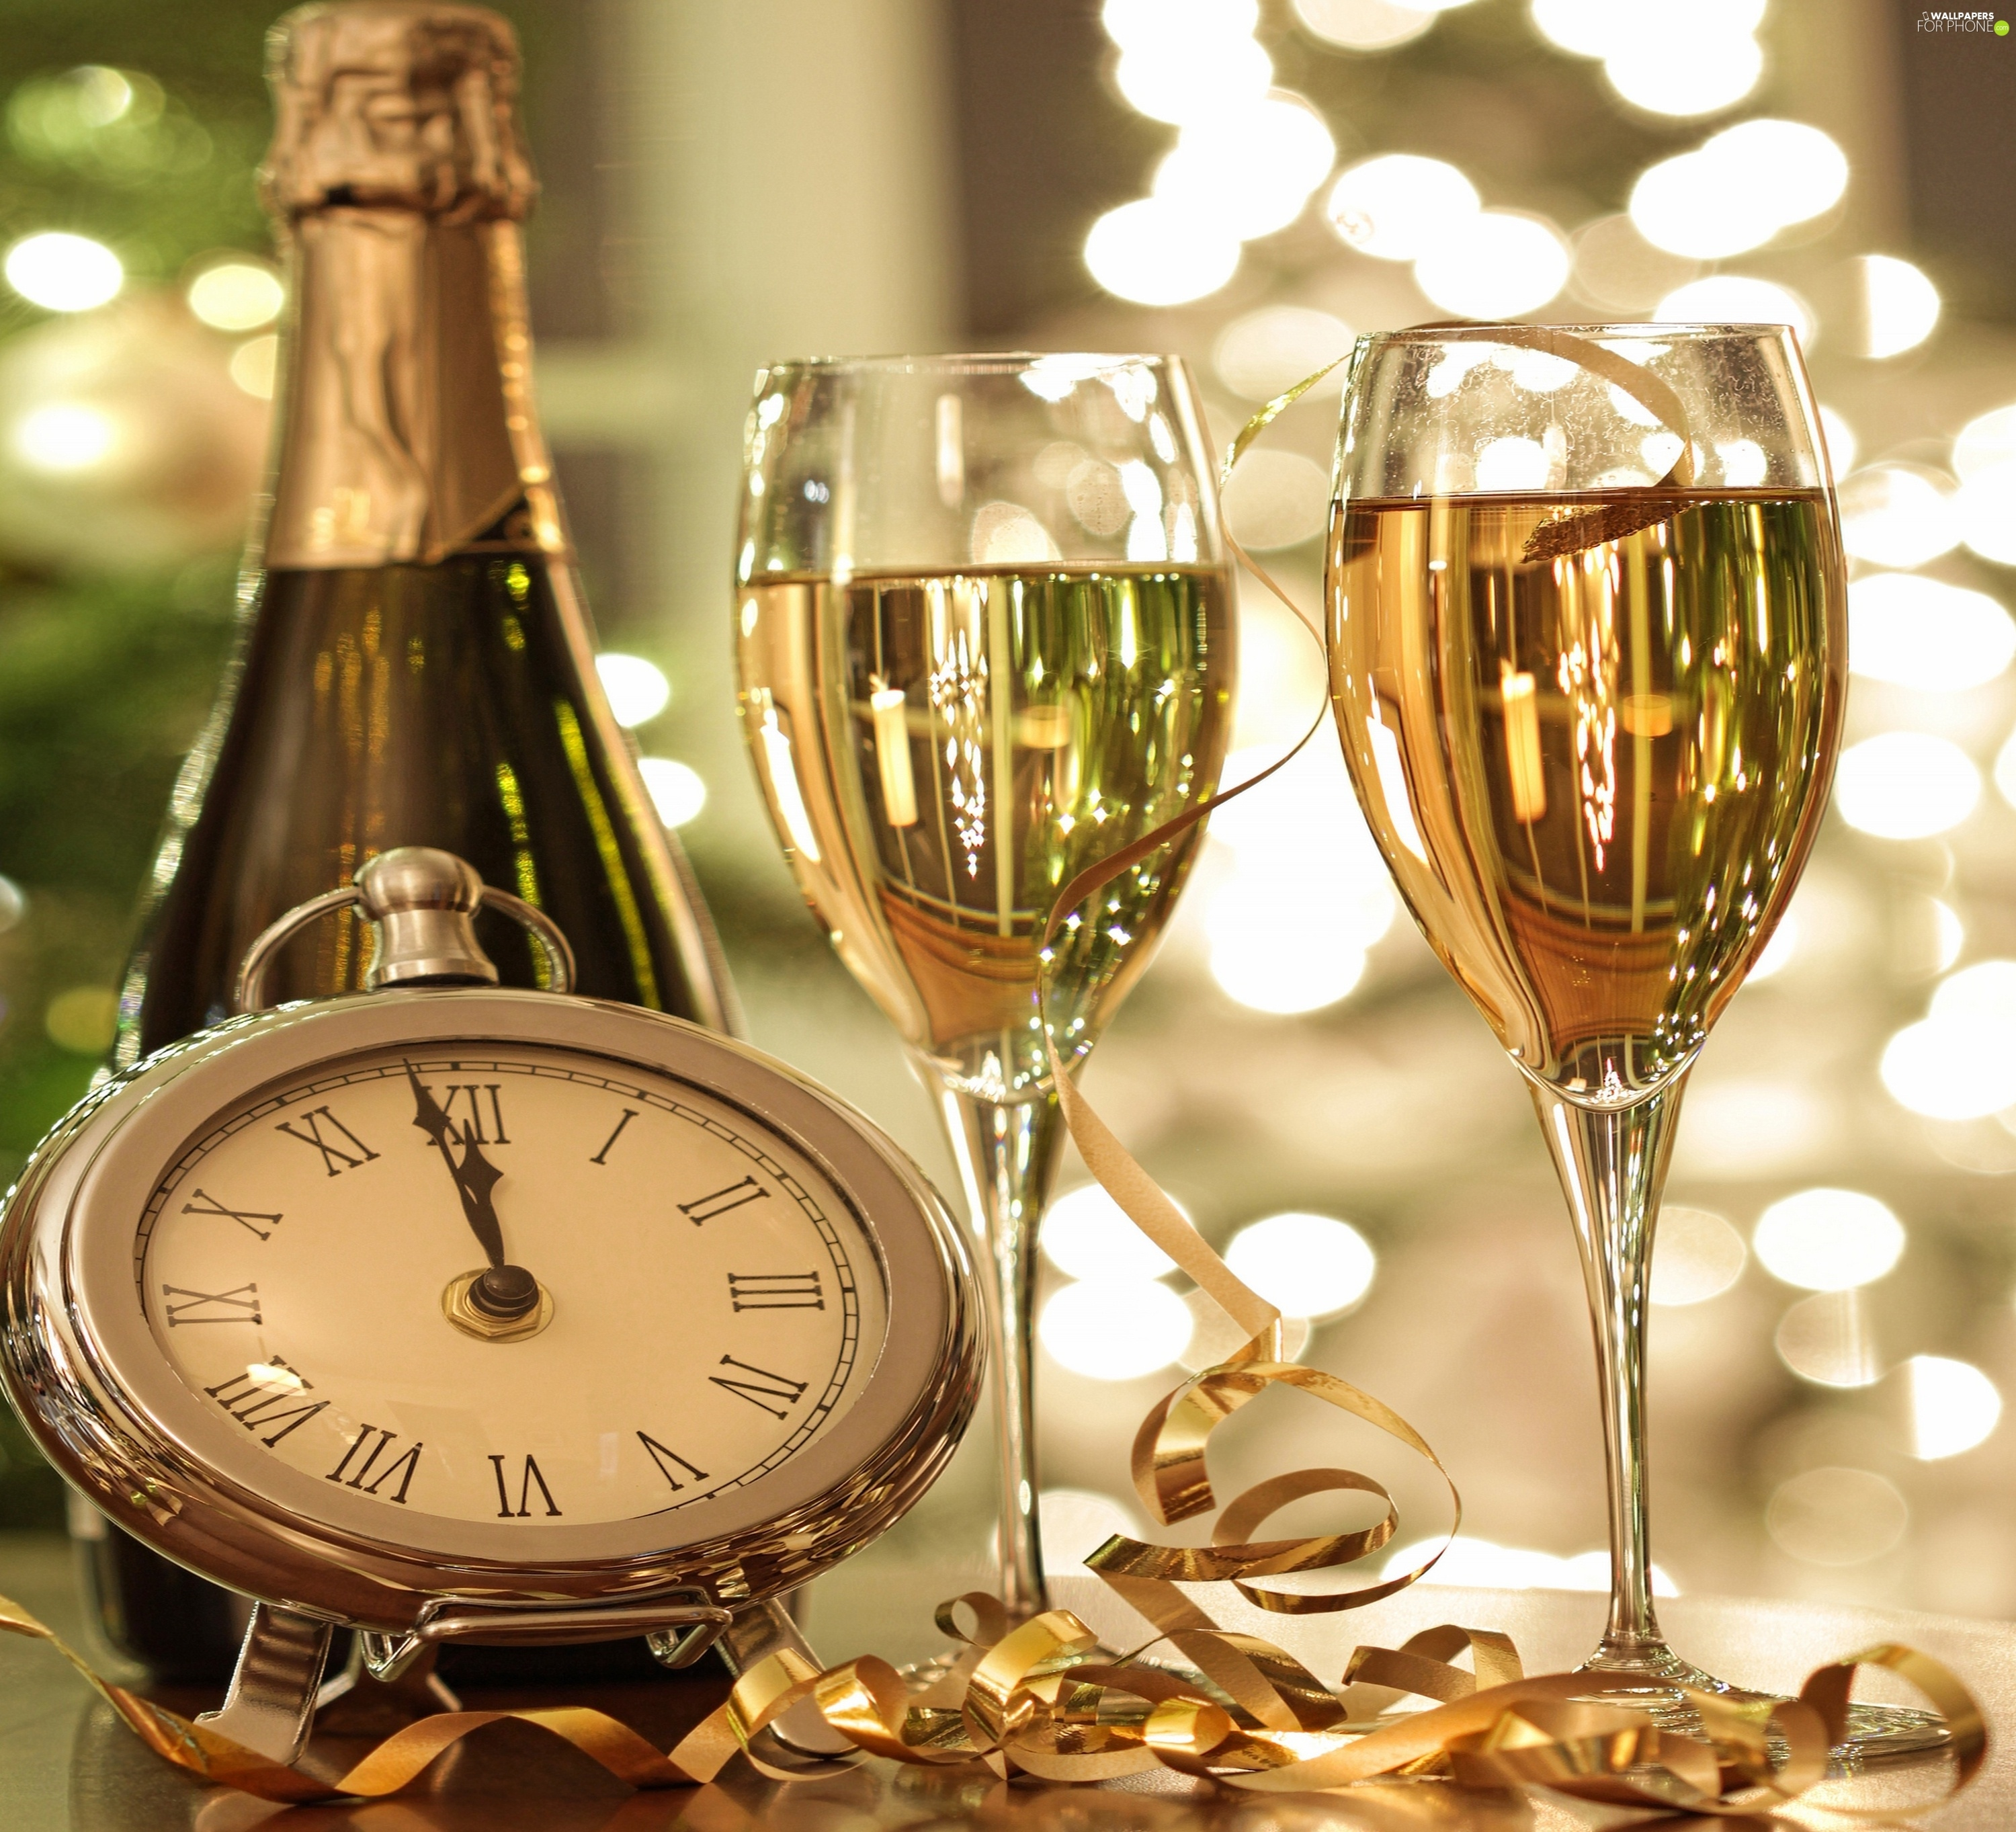 Lights, Clock, Champagne